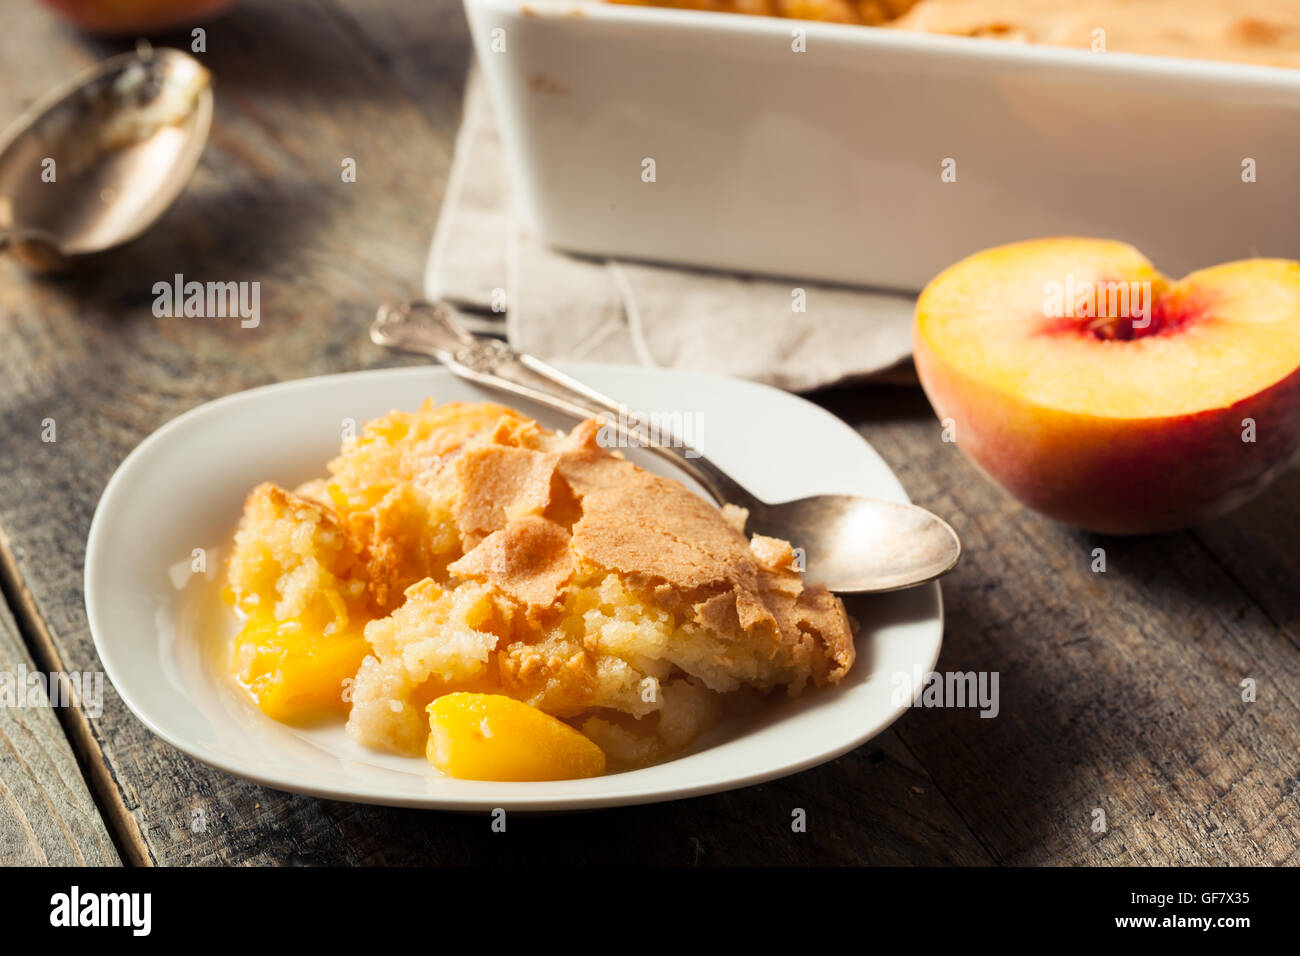 Delicious Homemade Peach Cobbler with a Pastry Crust - Stock Image